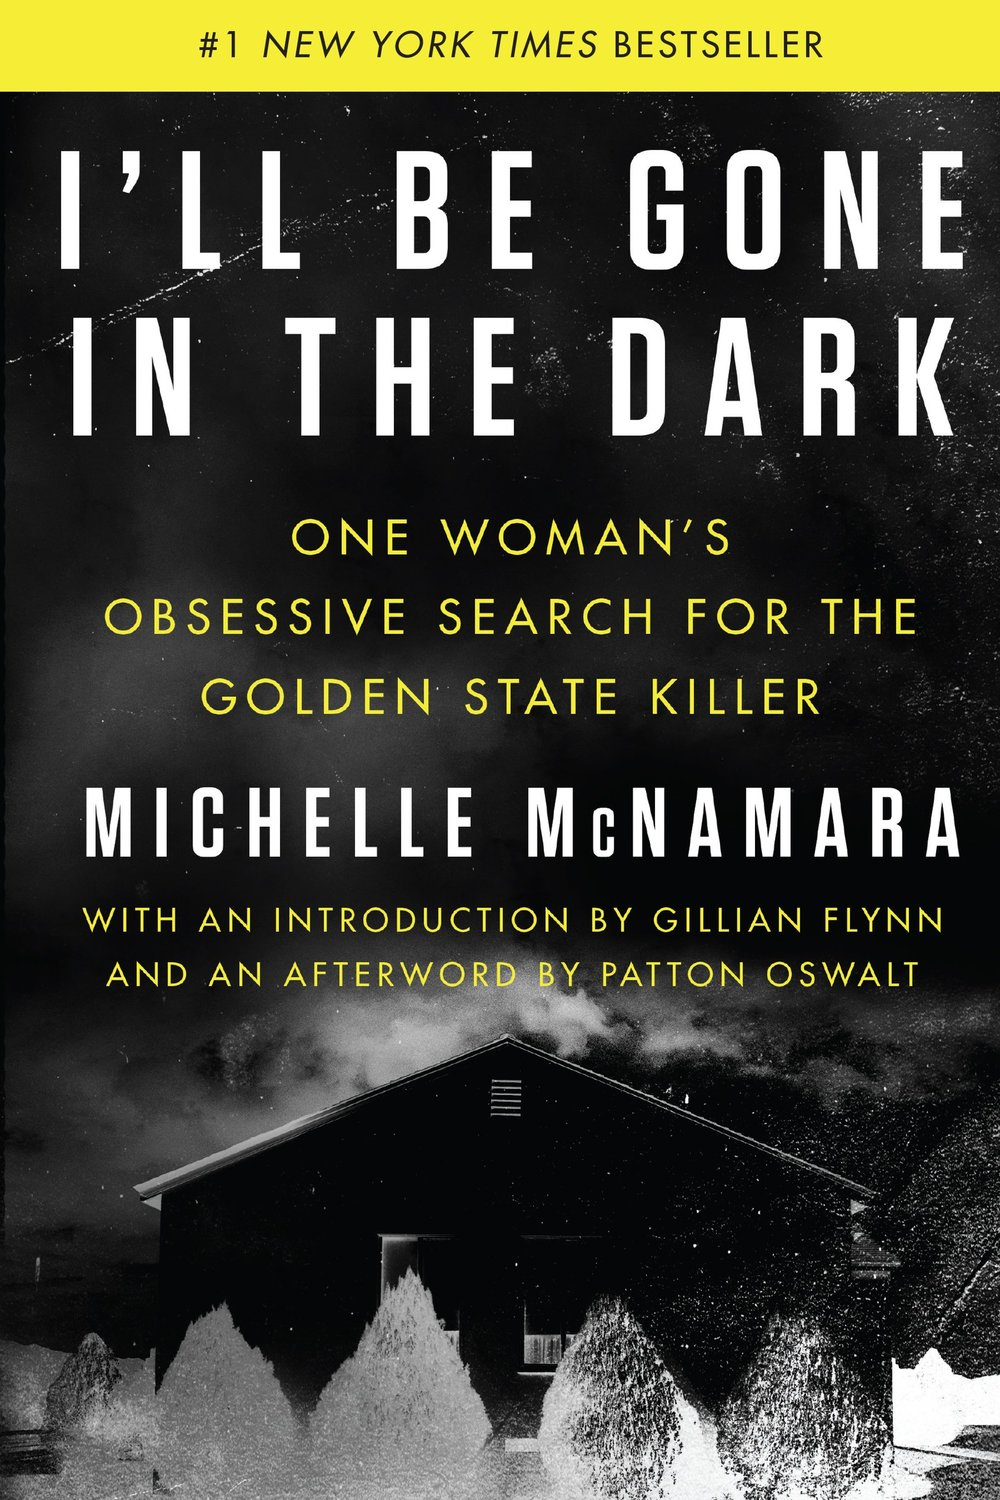 I'll Be Gone in the Dark by Michelle McNamara - As a true crime aficionado, I had first head of the Golden State Killer on an episode of the My Favorite Murder podcast. When I heard that the journalist who made this serial killer famous had died, I knew I had to read the book but kept putting it off. I woke up to news one day that the Golden State Killer had been finally found, years after he had stopped killing and I immediately downloaded this book on Audible. I can't believe I didn't do so earlier.